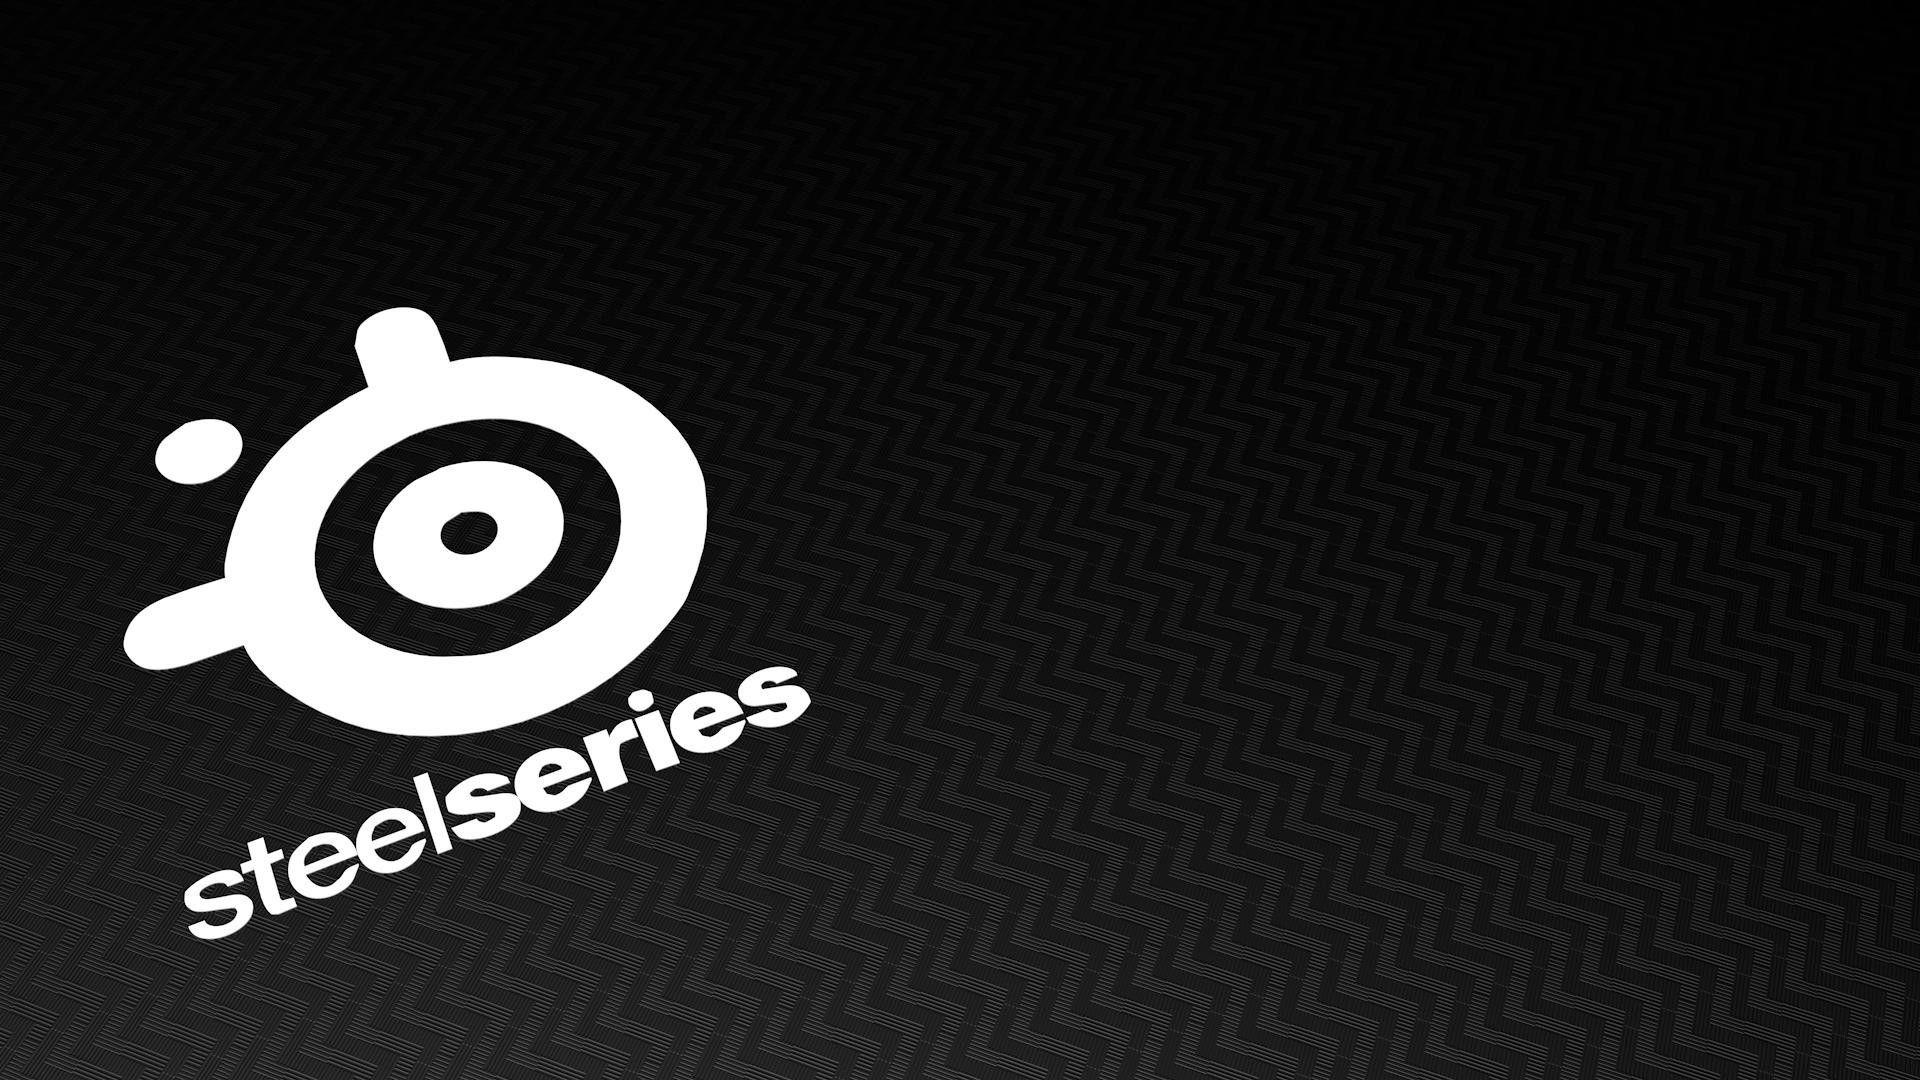 1920x1080 Steelseries Wallpapers (73+ background pictures)